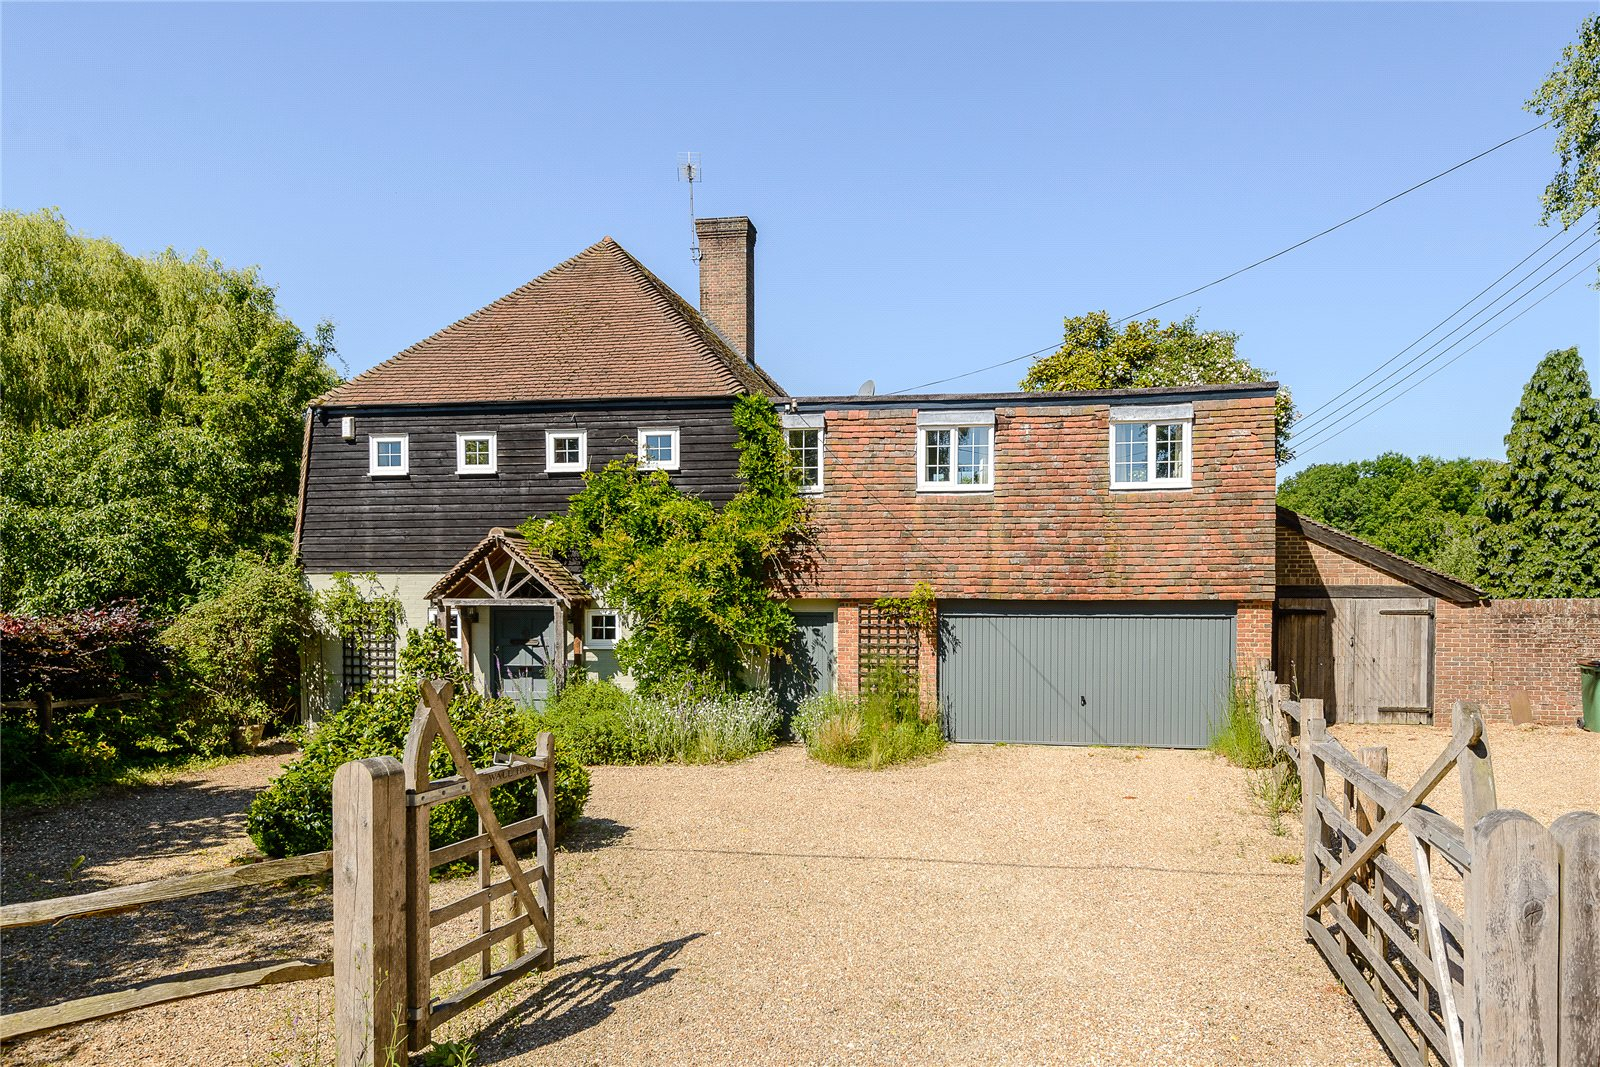 단독 가정 주택 용 매매 에 Old Holbrook, Horsham, West Sussex, RH12 Horsham, 영국